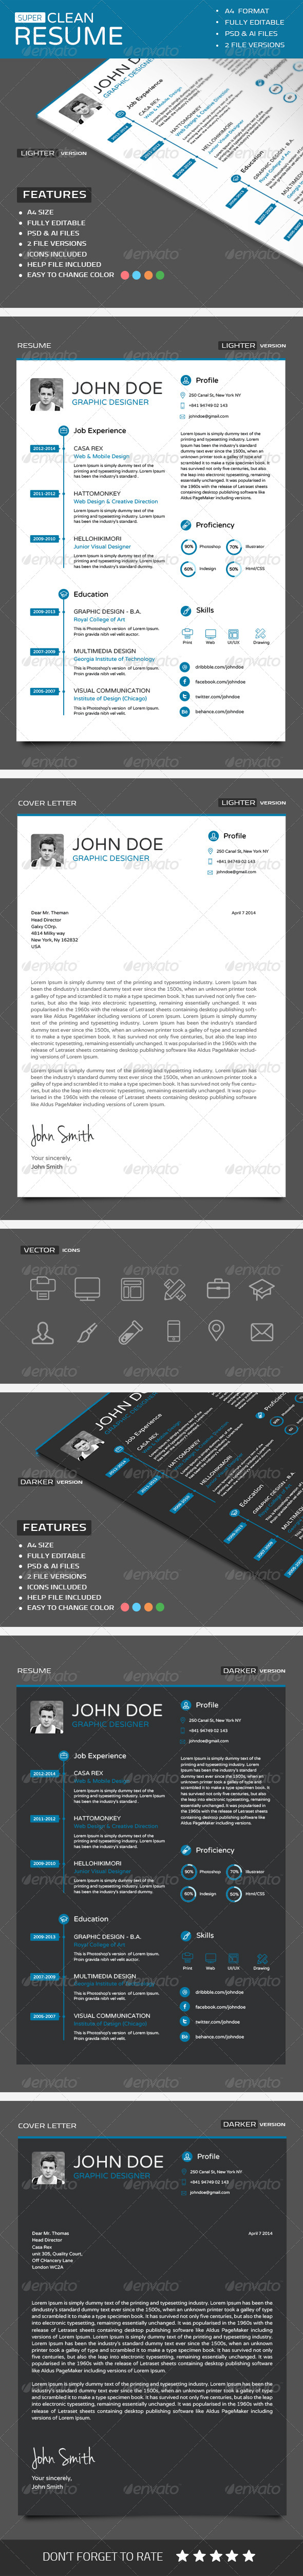 GraphicRiver Super Clean Resume 6734109